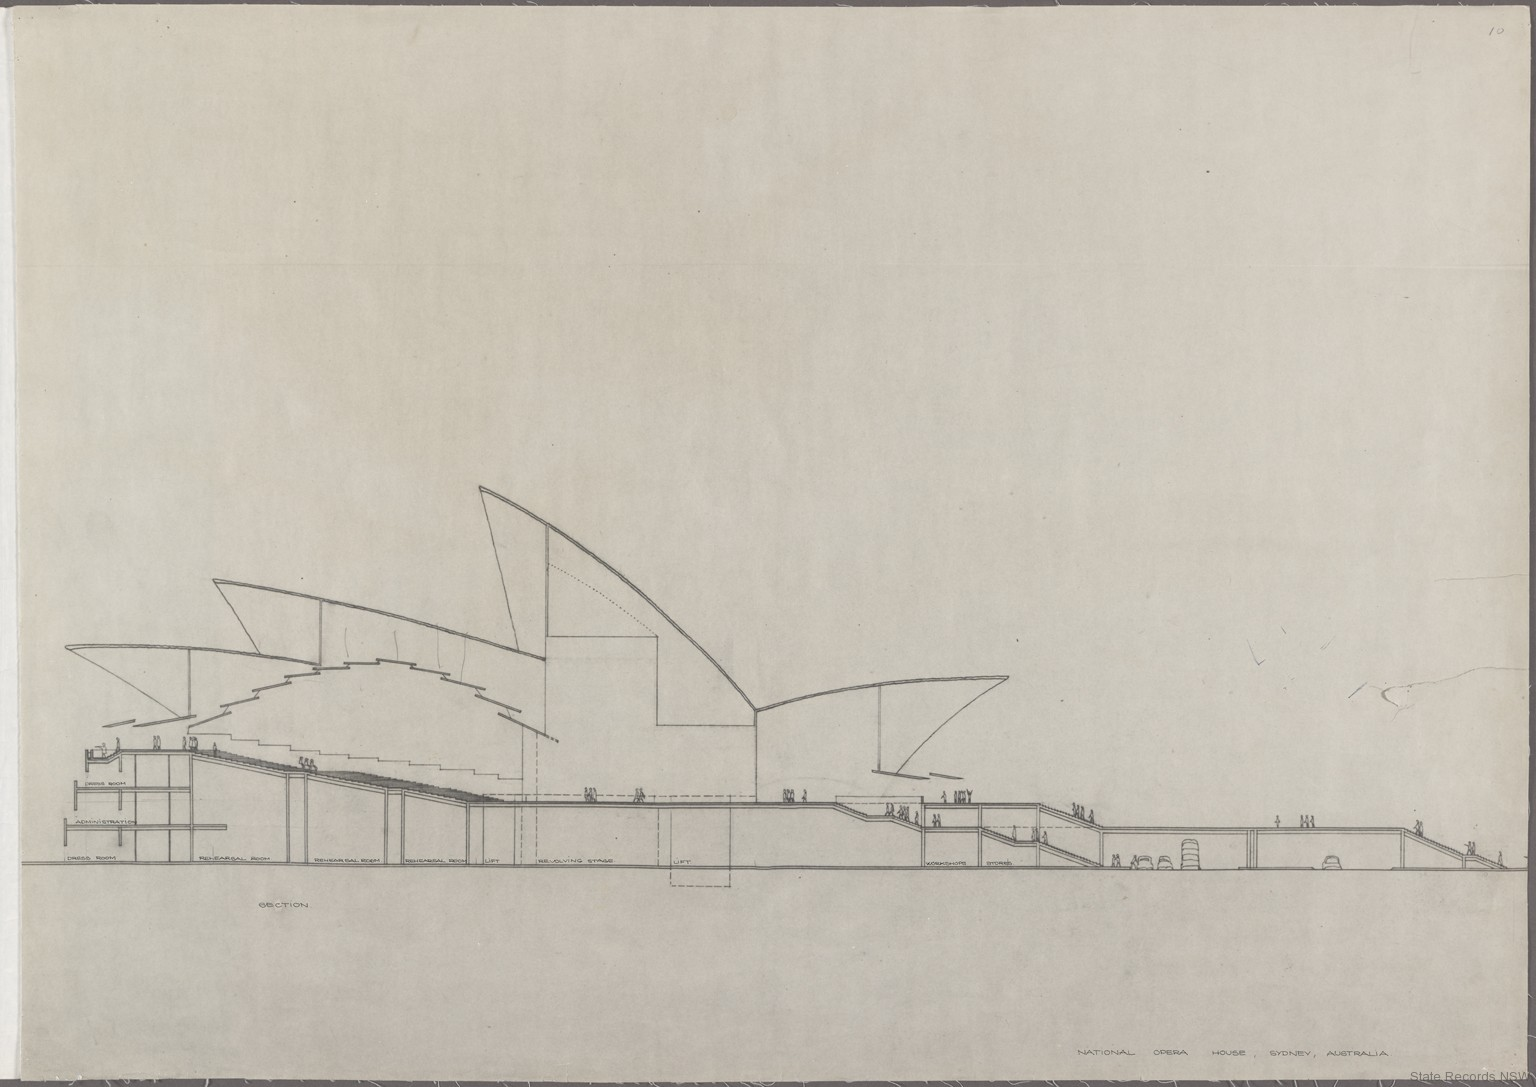 Sydney Opera House – Utzon drawings - State Records NSW